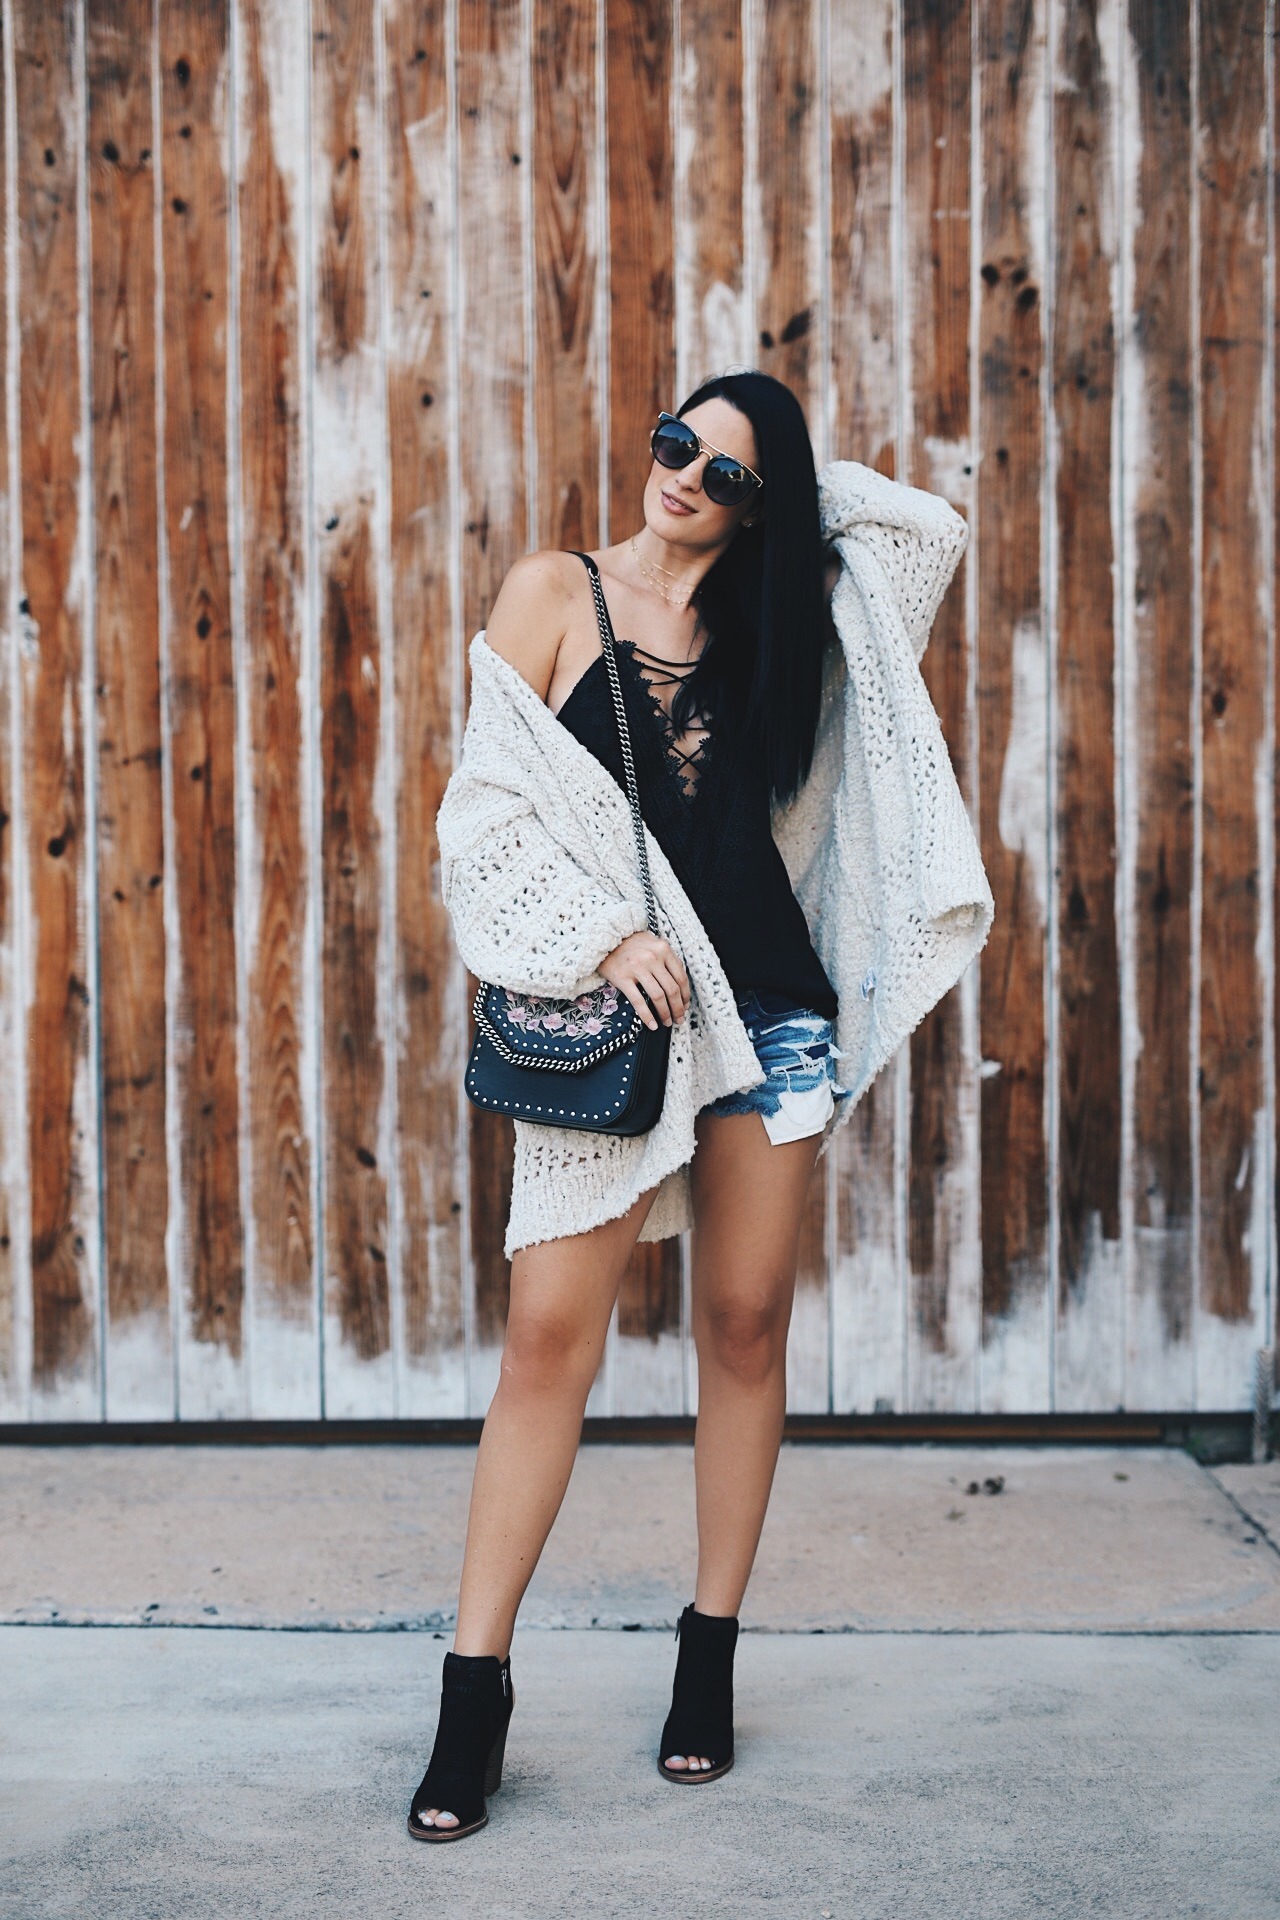 Tips to Easily Transition Your Summer Wardrobe to Fall with Nordstrom | summer to fall fashion pieces | summer to fall wardrobe | fall style ideas | transitioning seasonal wardrobes | how to style clothing from summer to fall | summer to fall style tips || Dressed to Kill